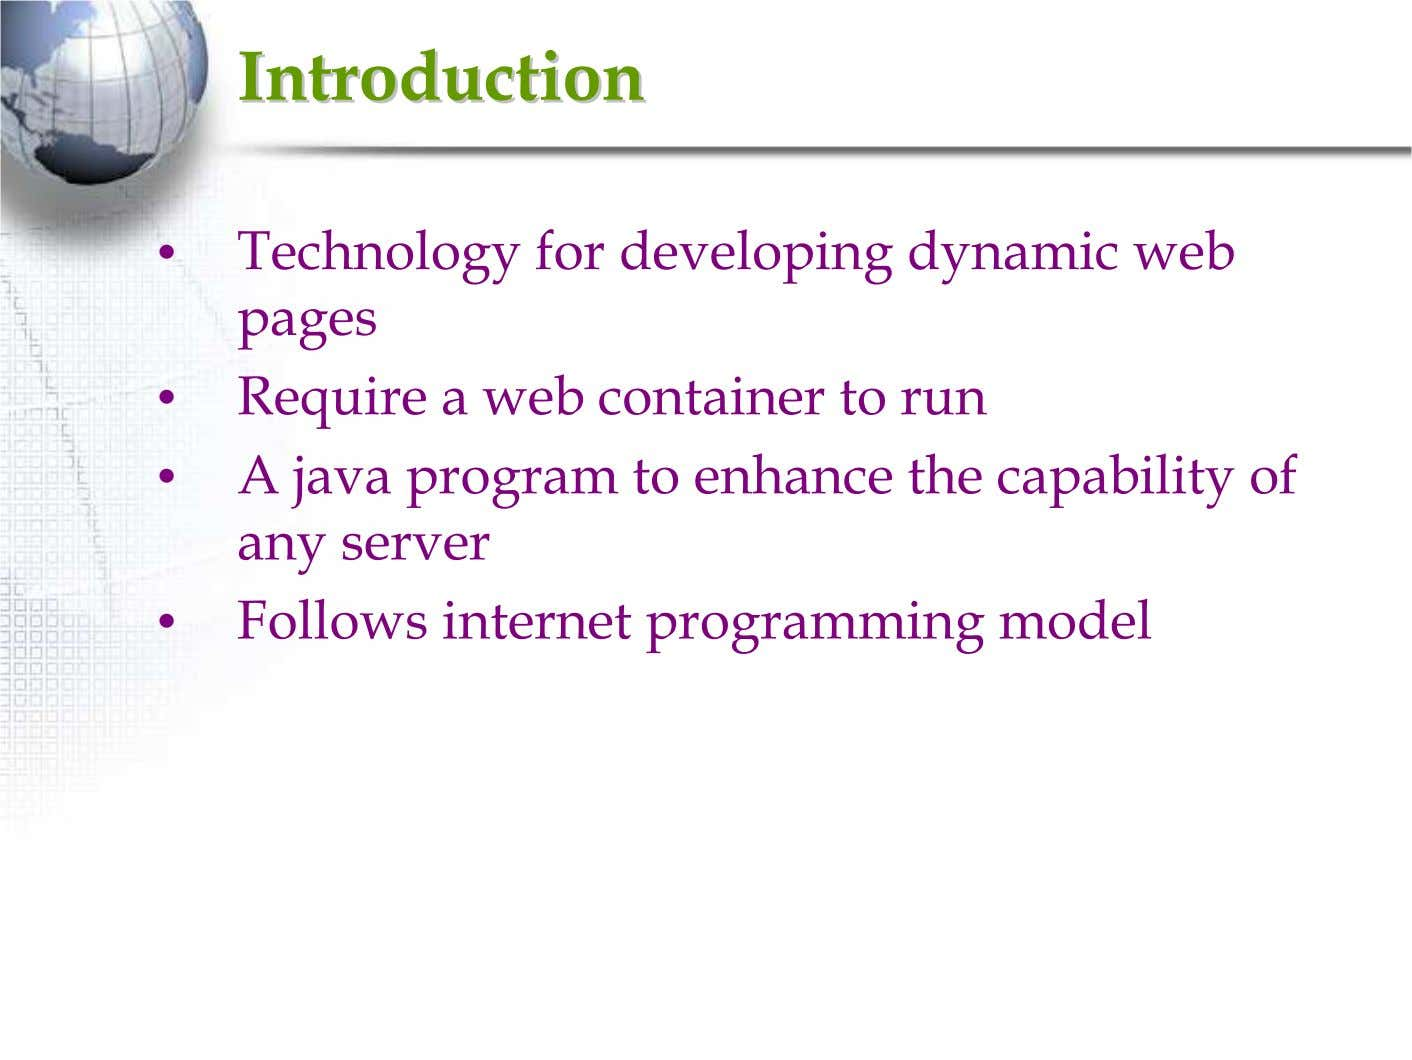 IntroductionIntroduction • Technology for developing dynamic web pages • Require a web container to run